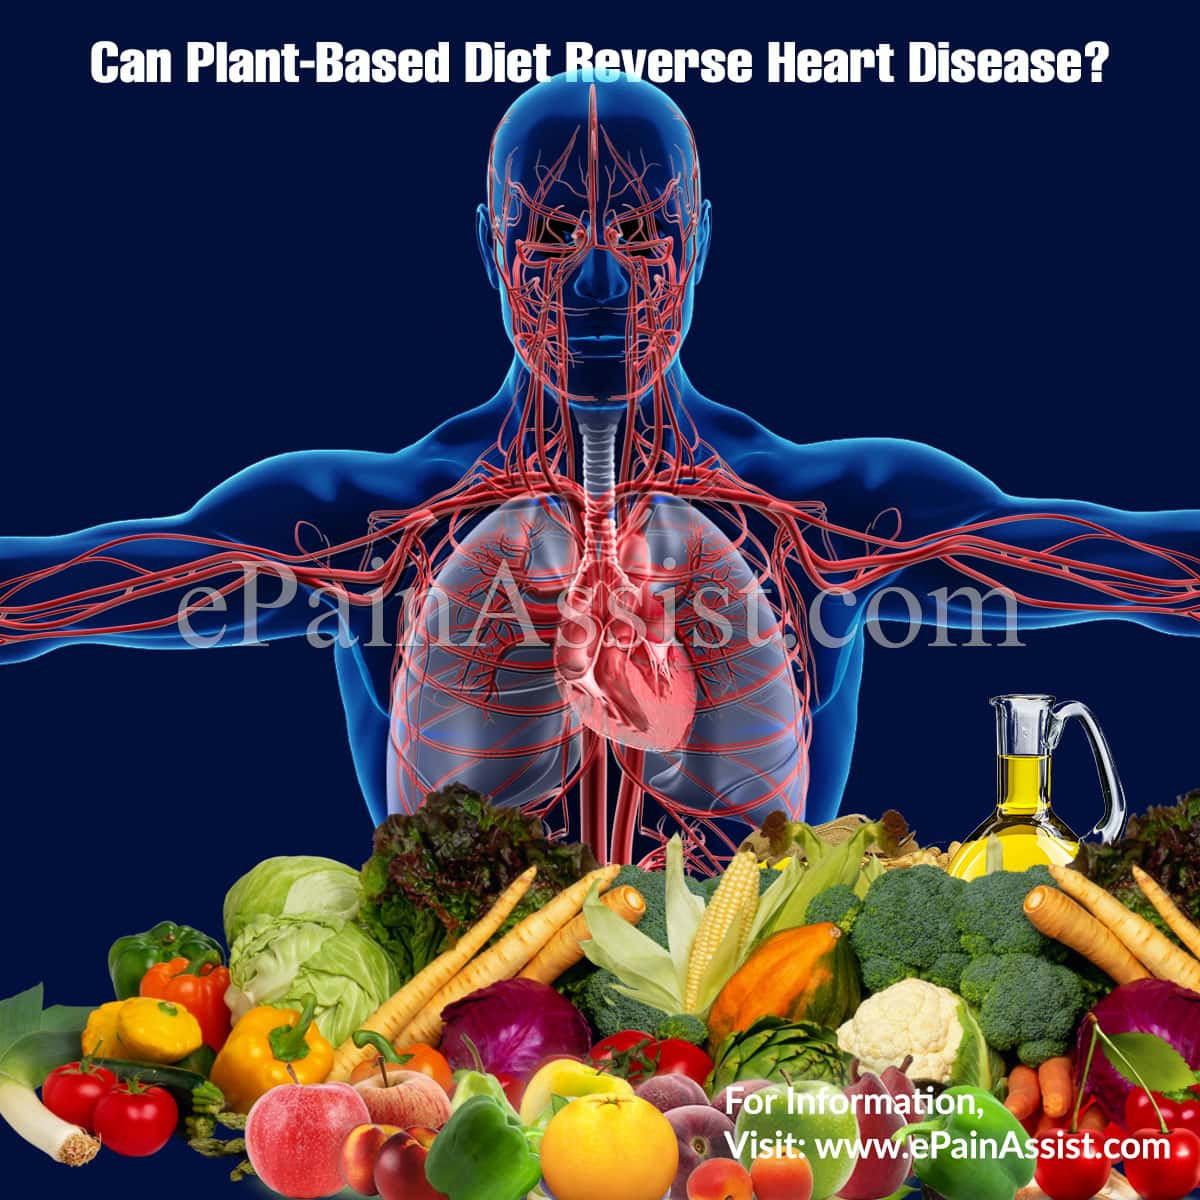 Can Plant-Based Diet Reverse Heart Disease?